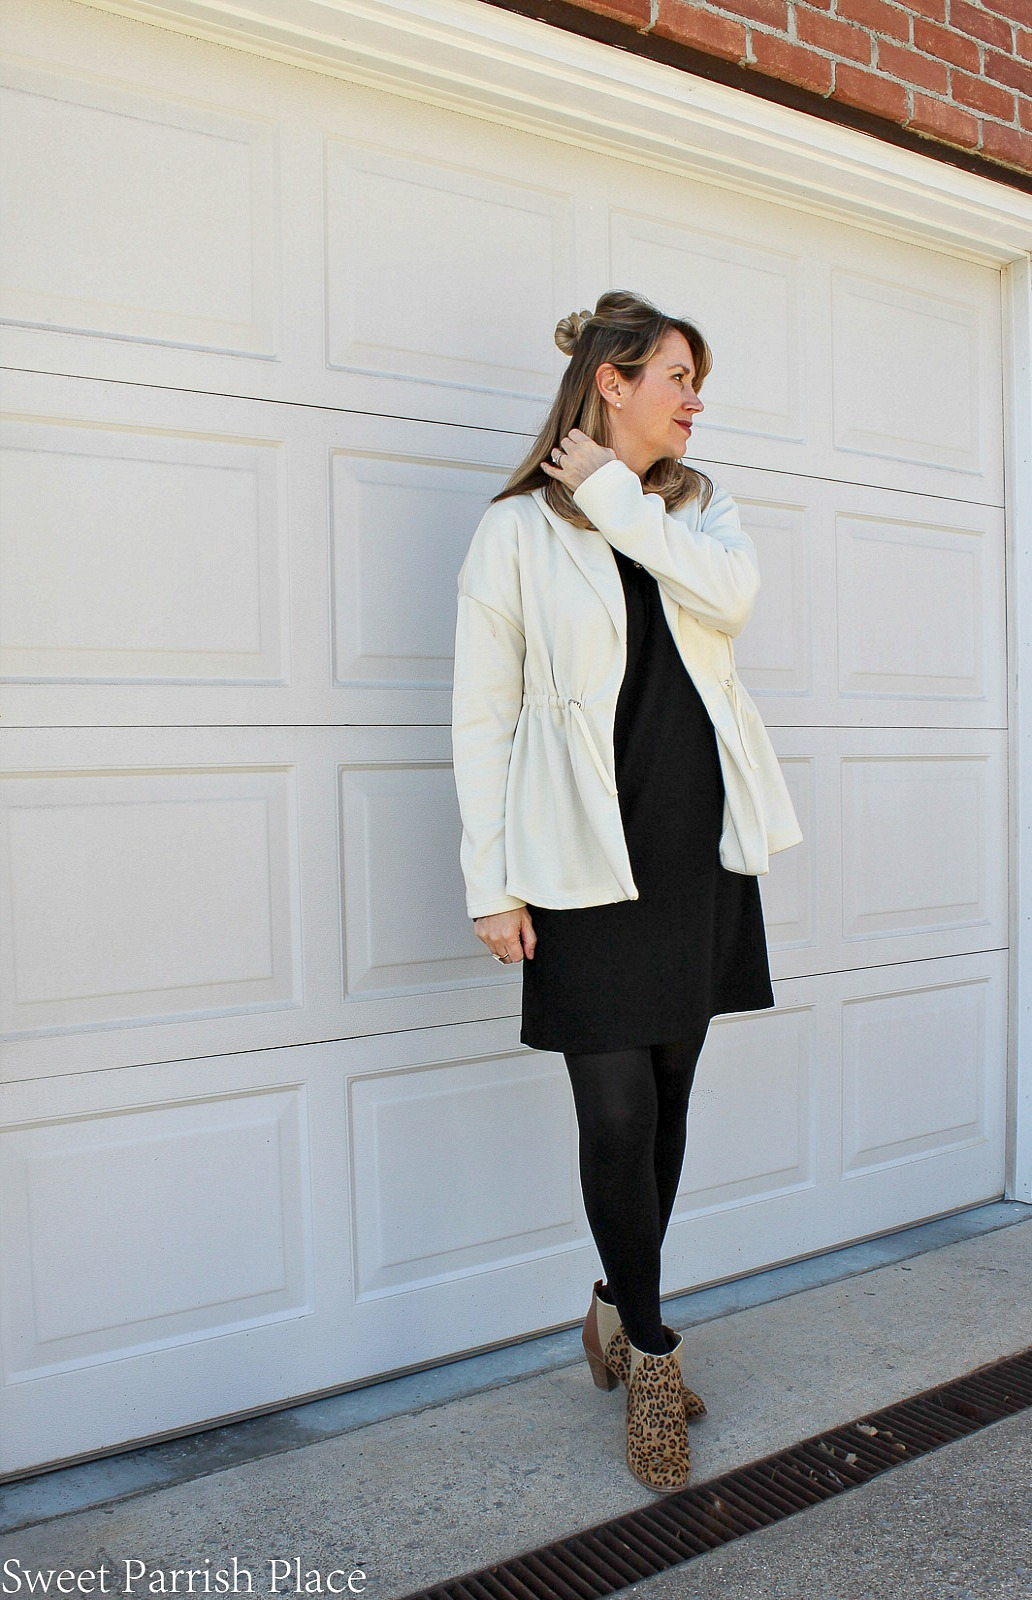 Fabletics sage coat with black dress